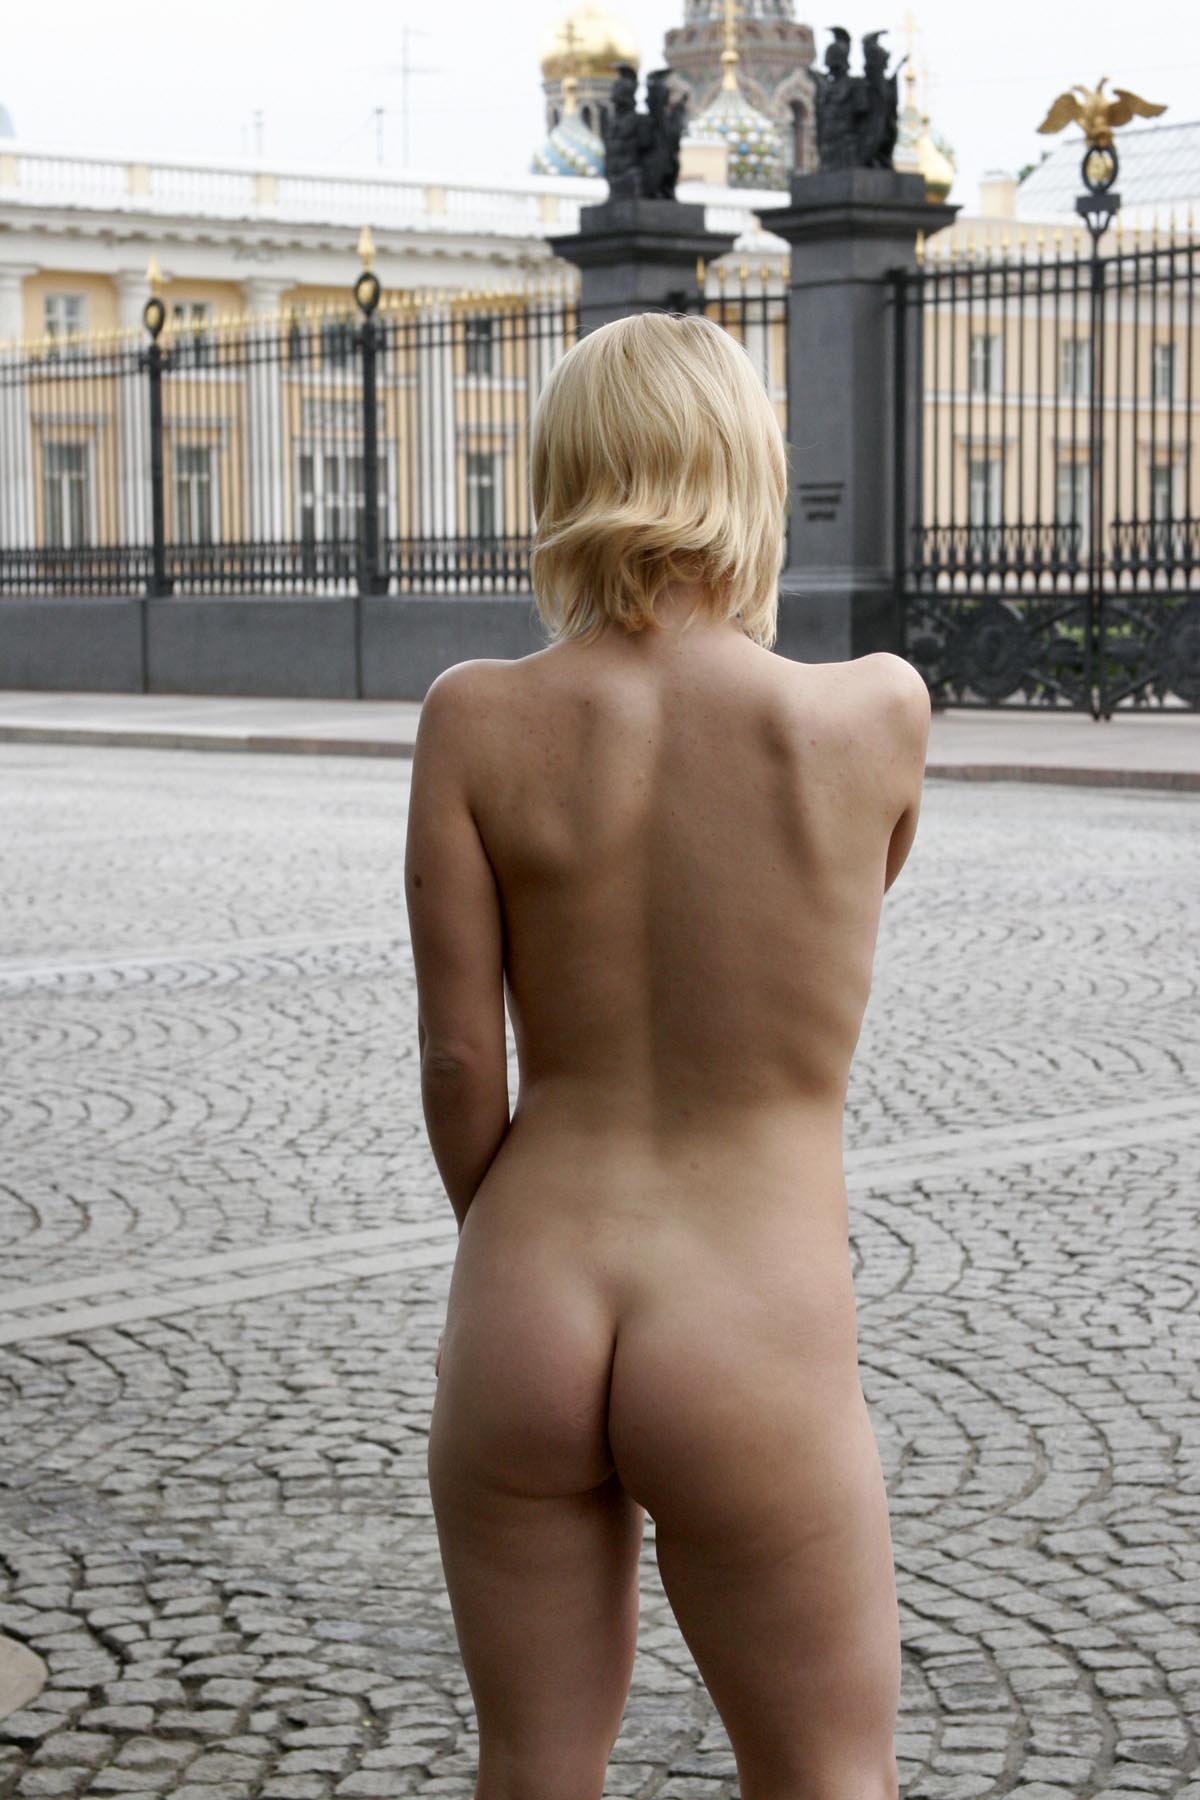 Girls with short blonde hair nude for the